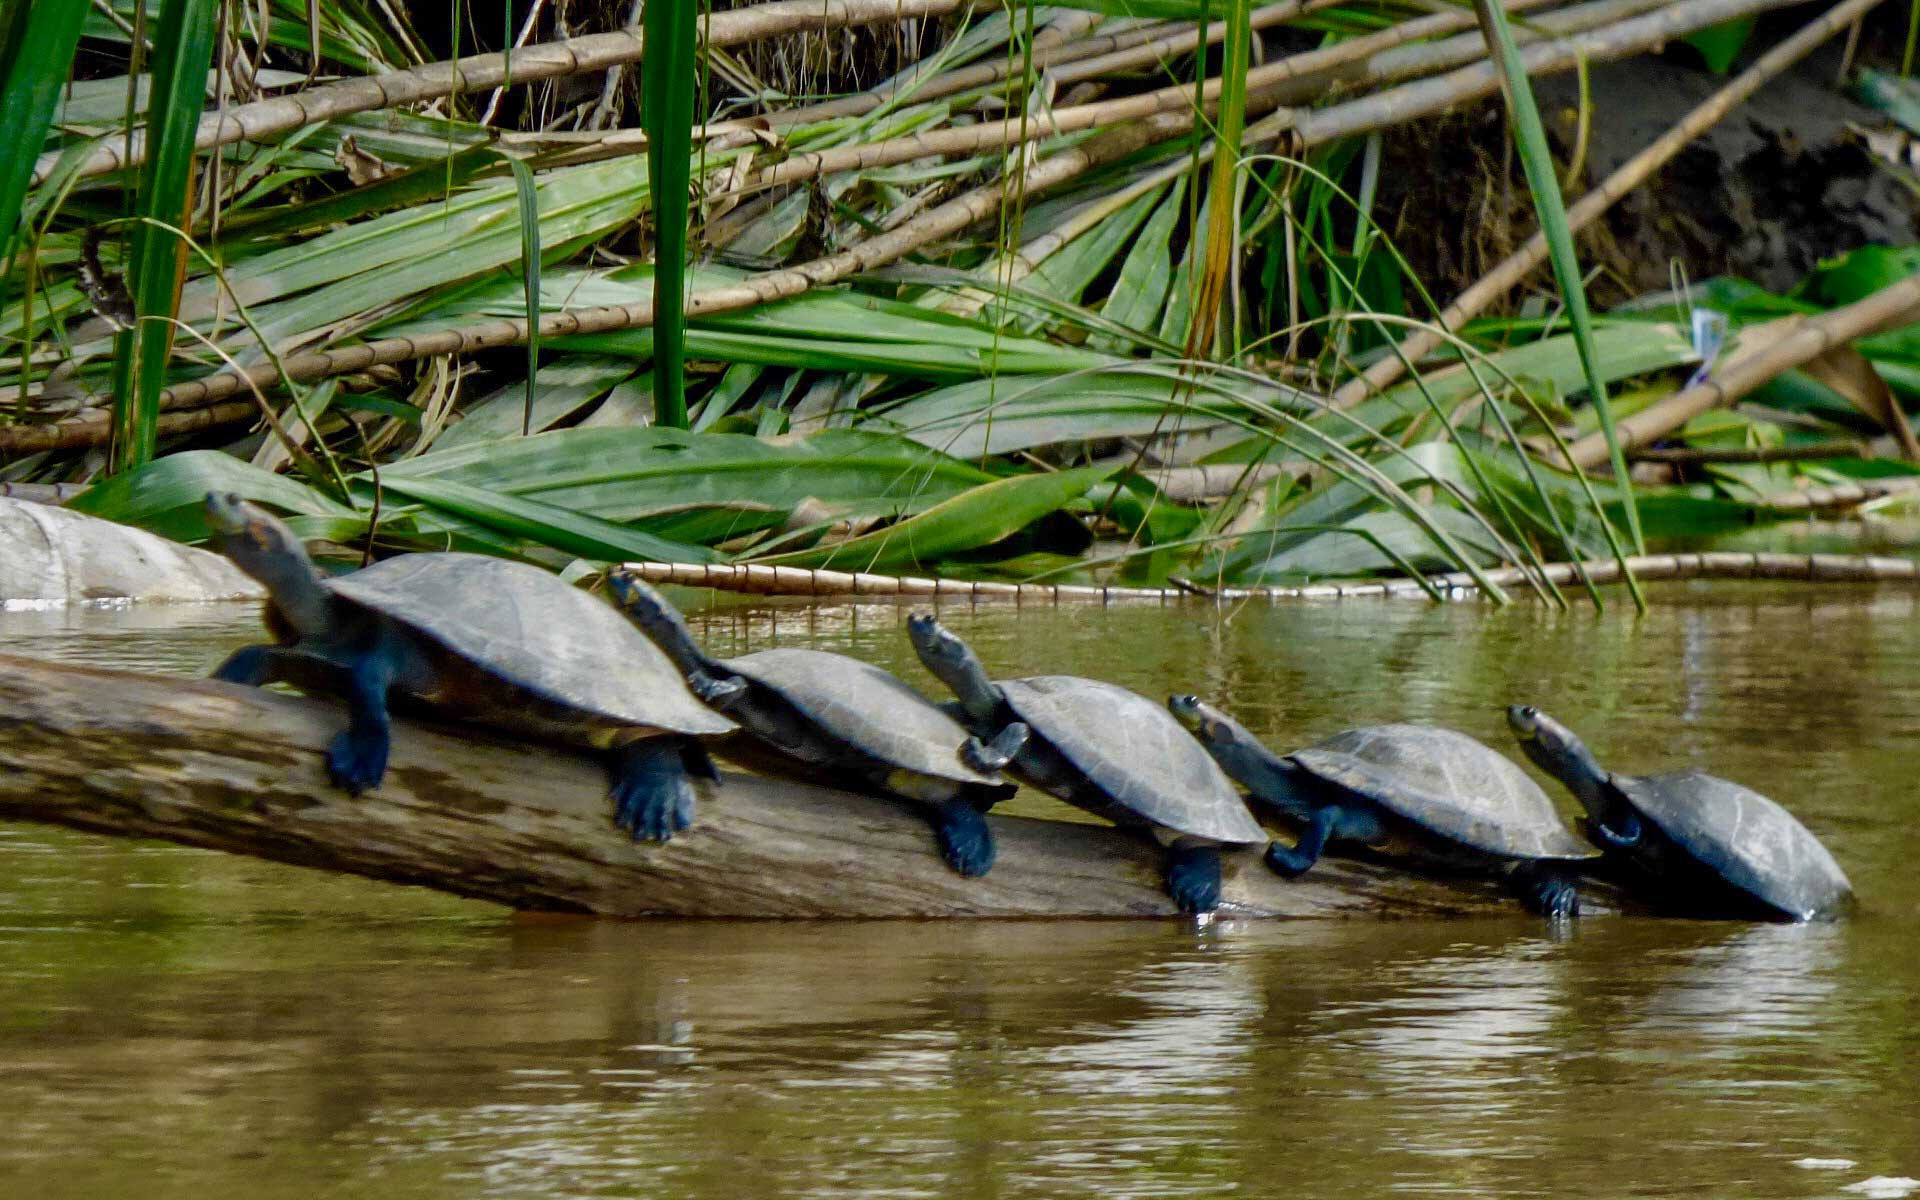 A photo of turtles sunning on a log in the Amazon River; over 45 turtles and terrestial tortoises exist in the Amazon Basin